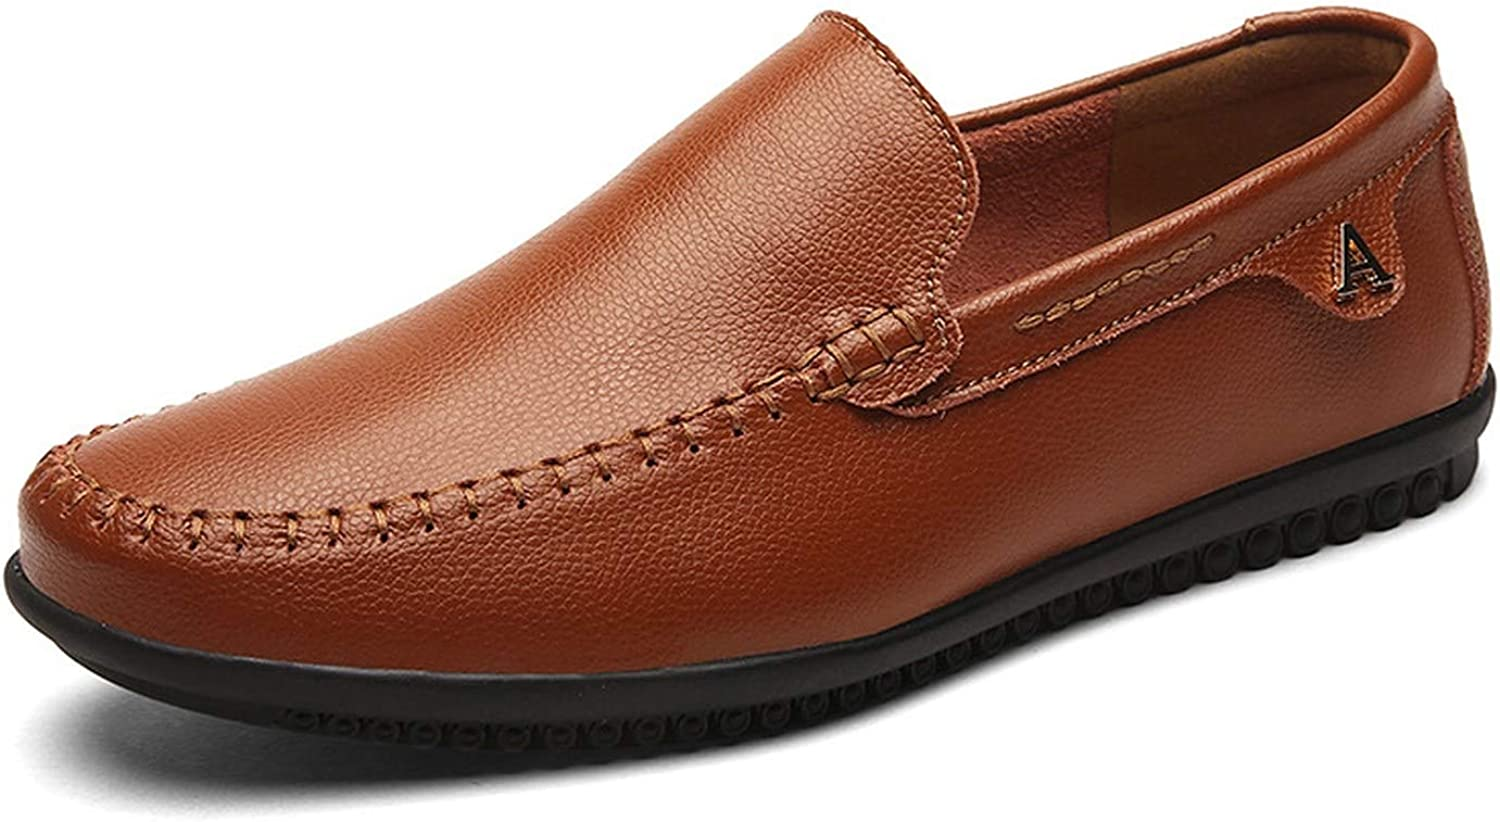 Can't be satisfied Mens shoes Large Casual Loafers shoes Men Black Driving Moccasins Men shoes Loafers British Slip On,Brown,9.5